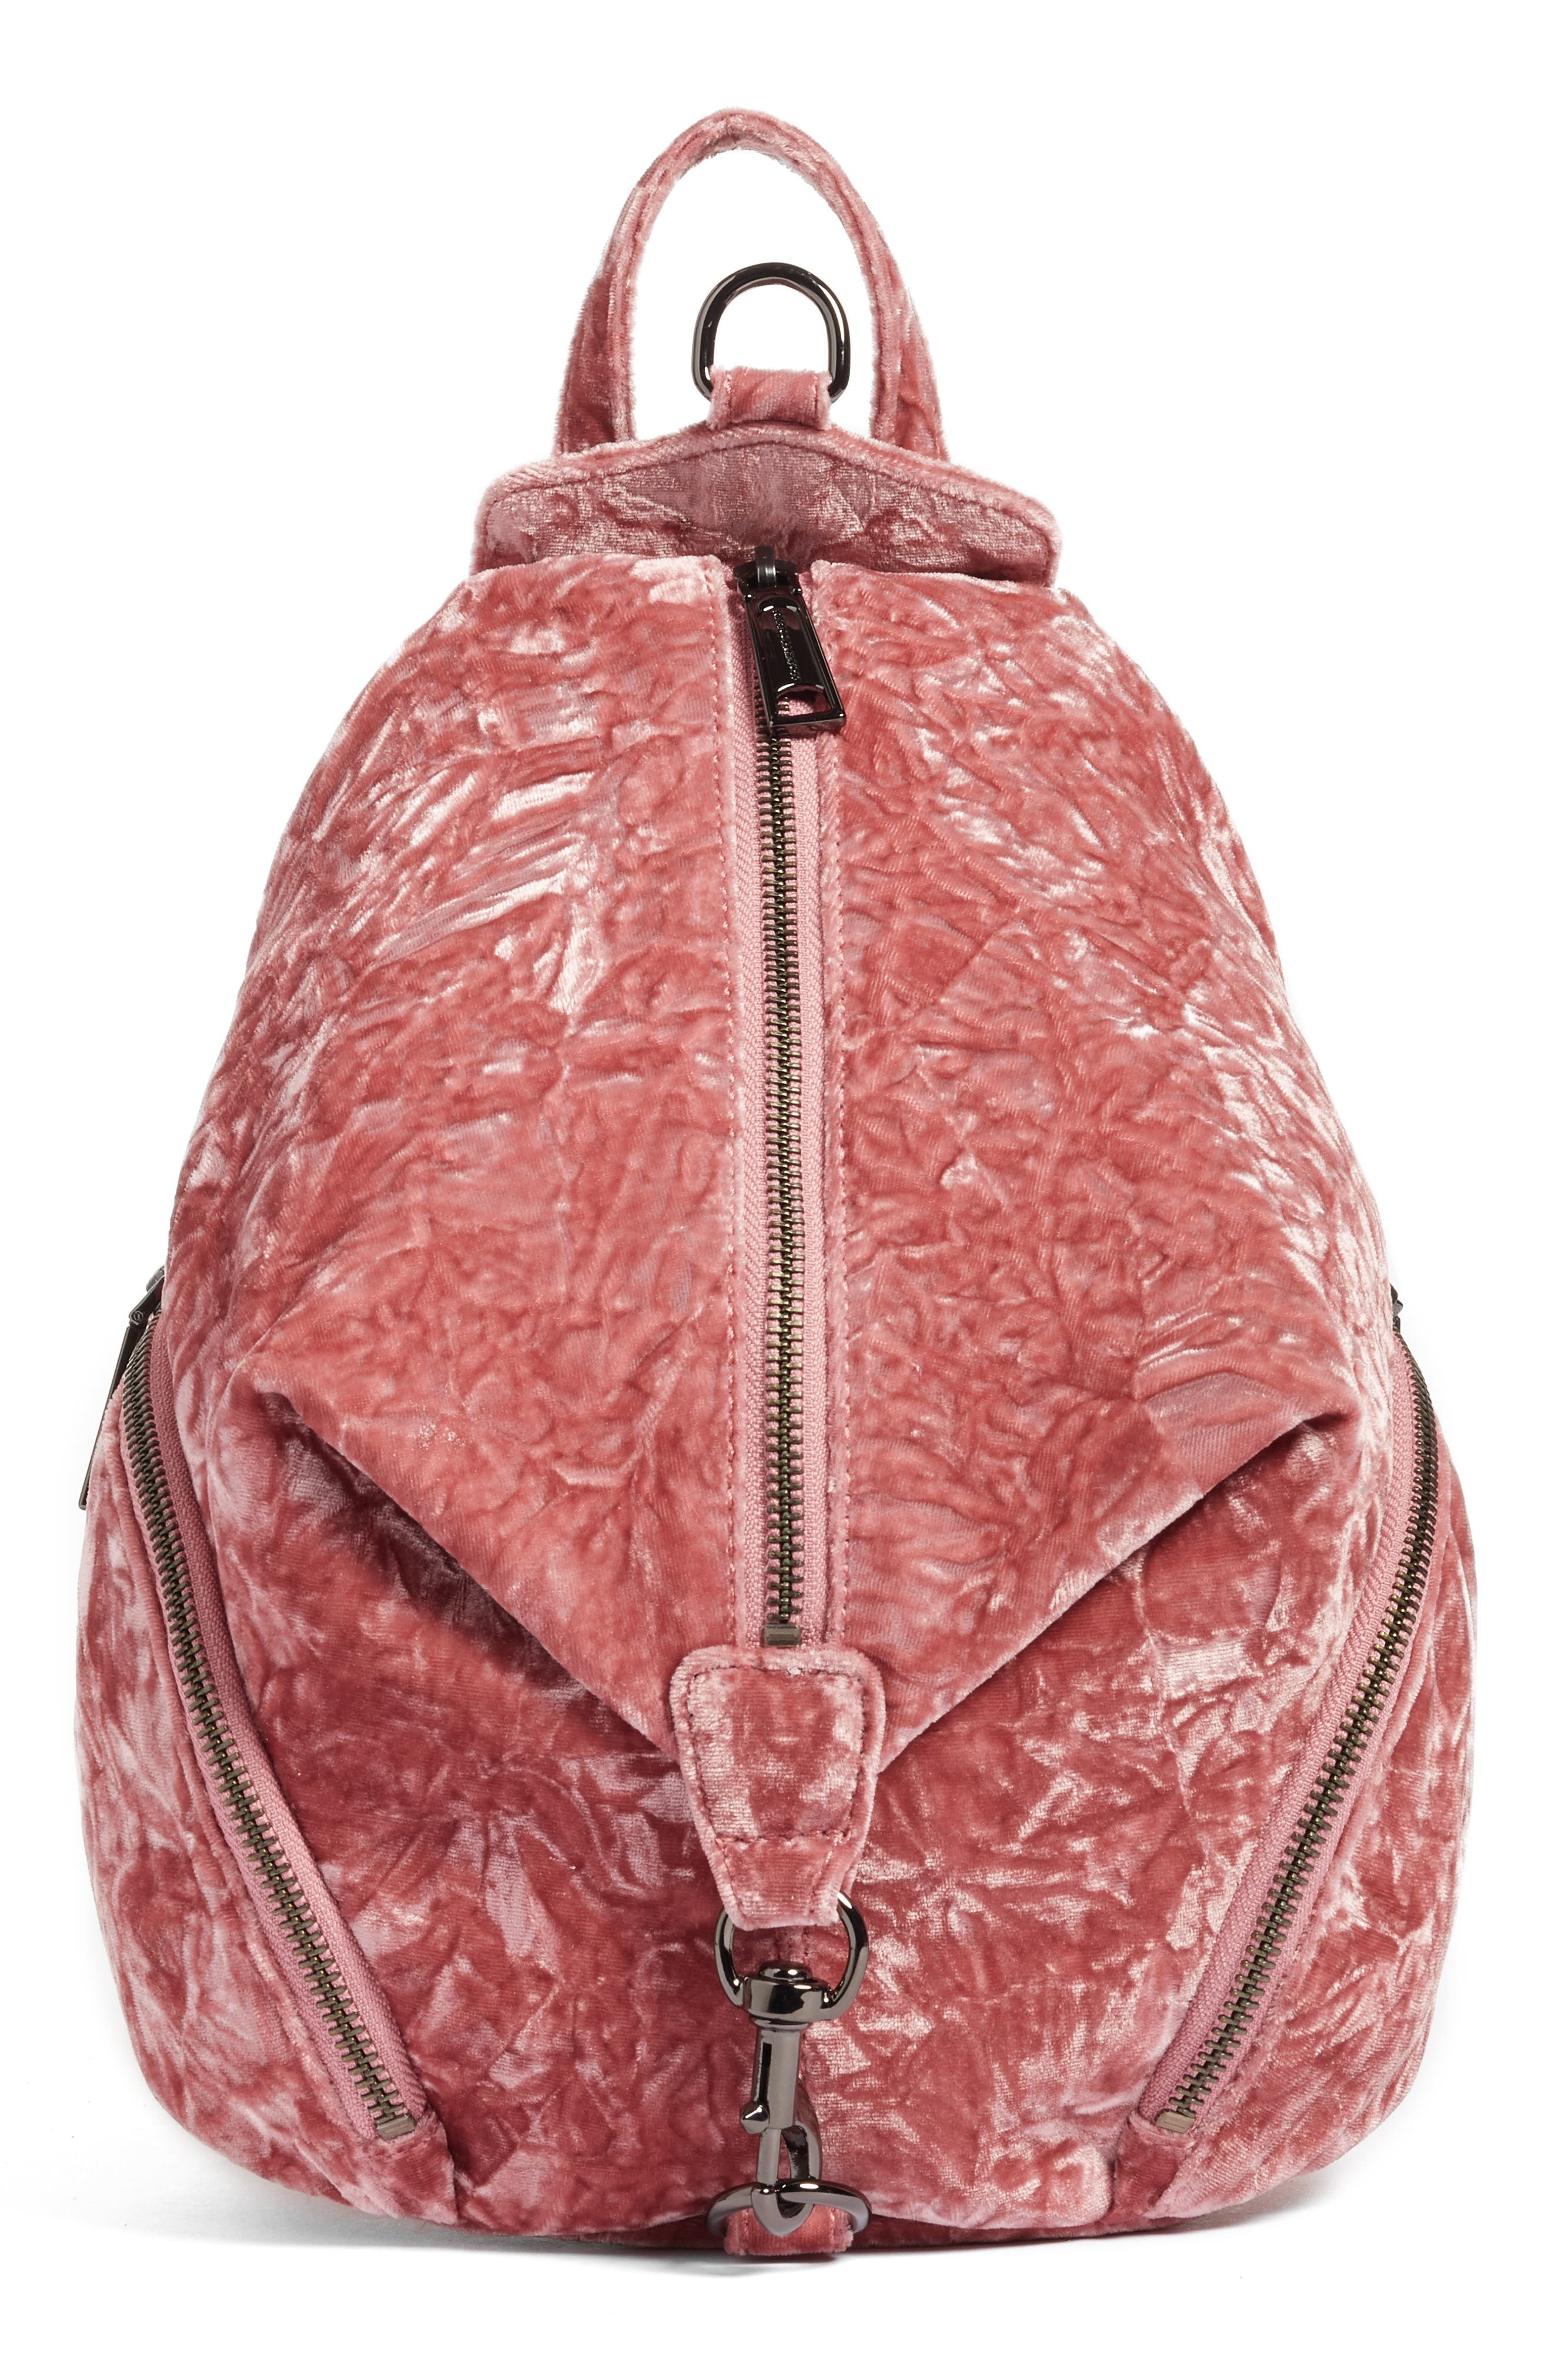 Medium Julian Velvet Backpack,                         Main,                         color, Pink Velvet/ Gunmetal Hardware